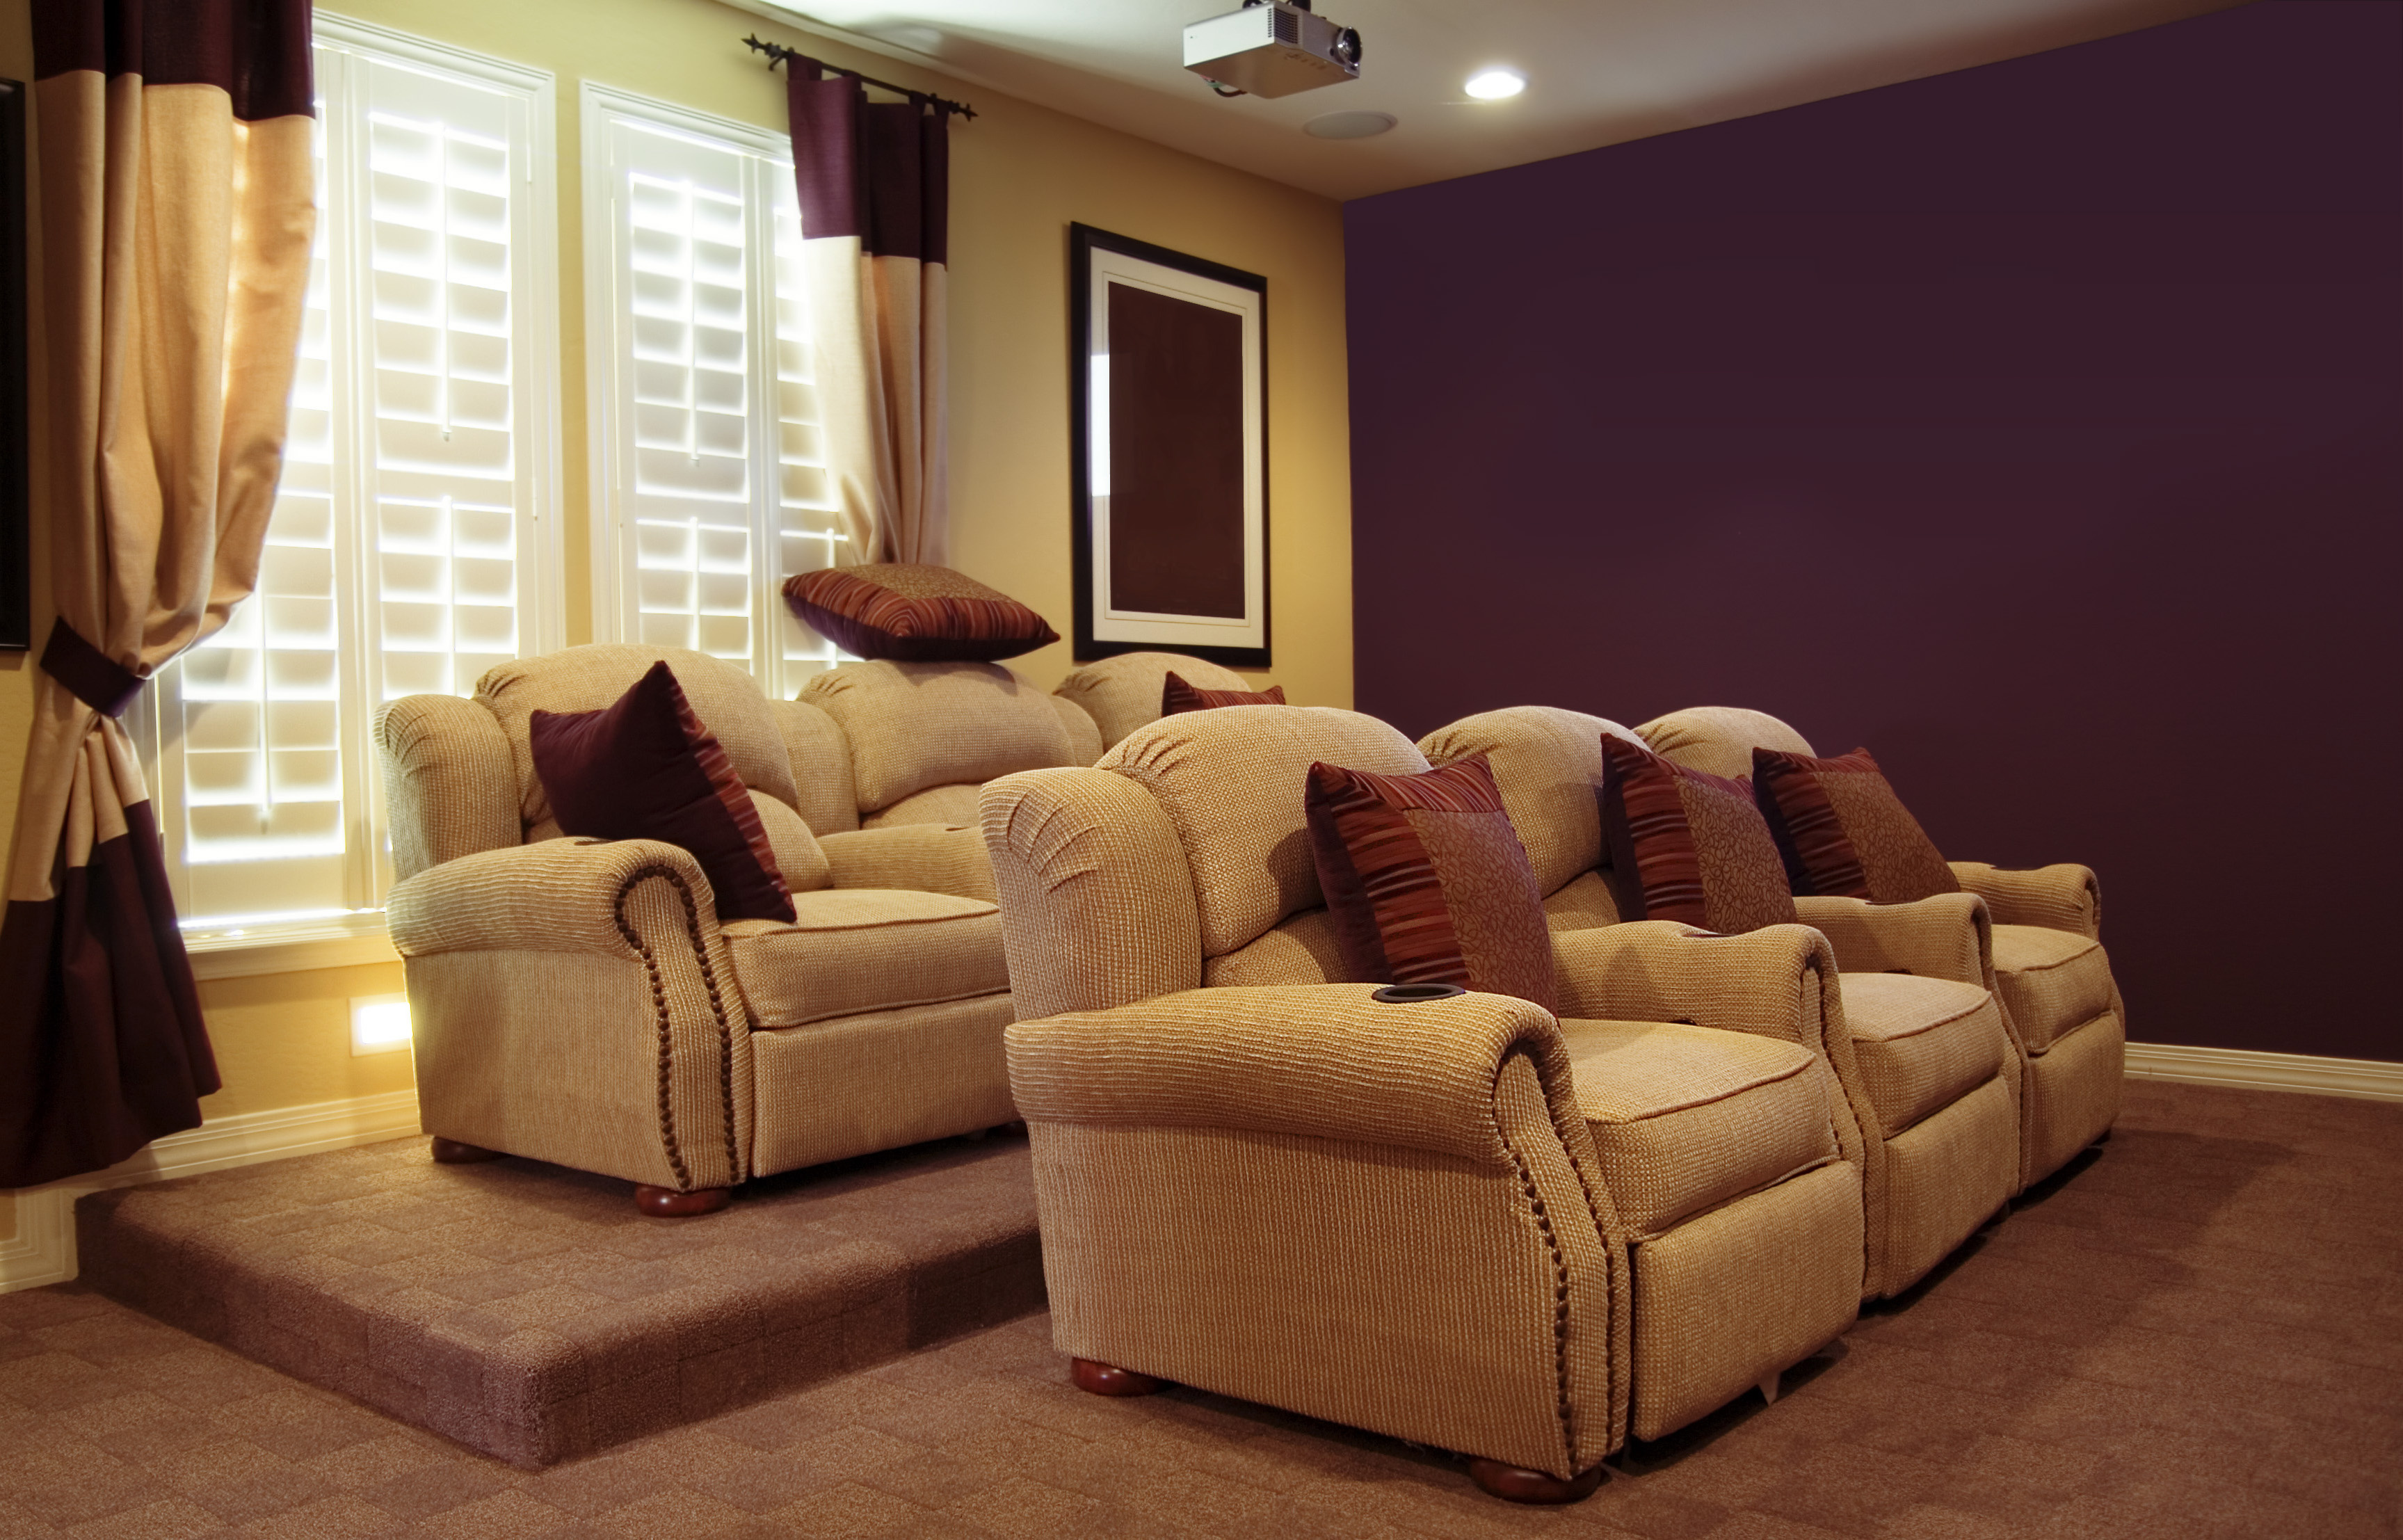 Home theater and media room design ideas for Luxury home theater rooms